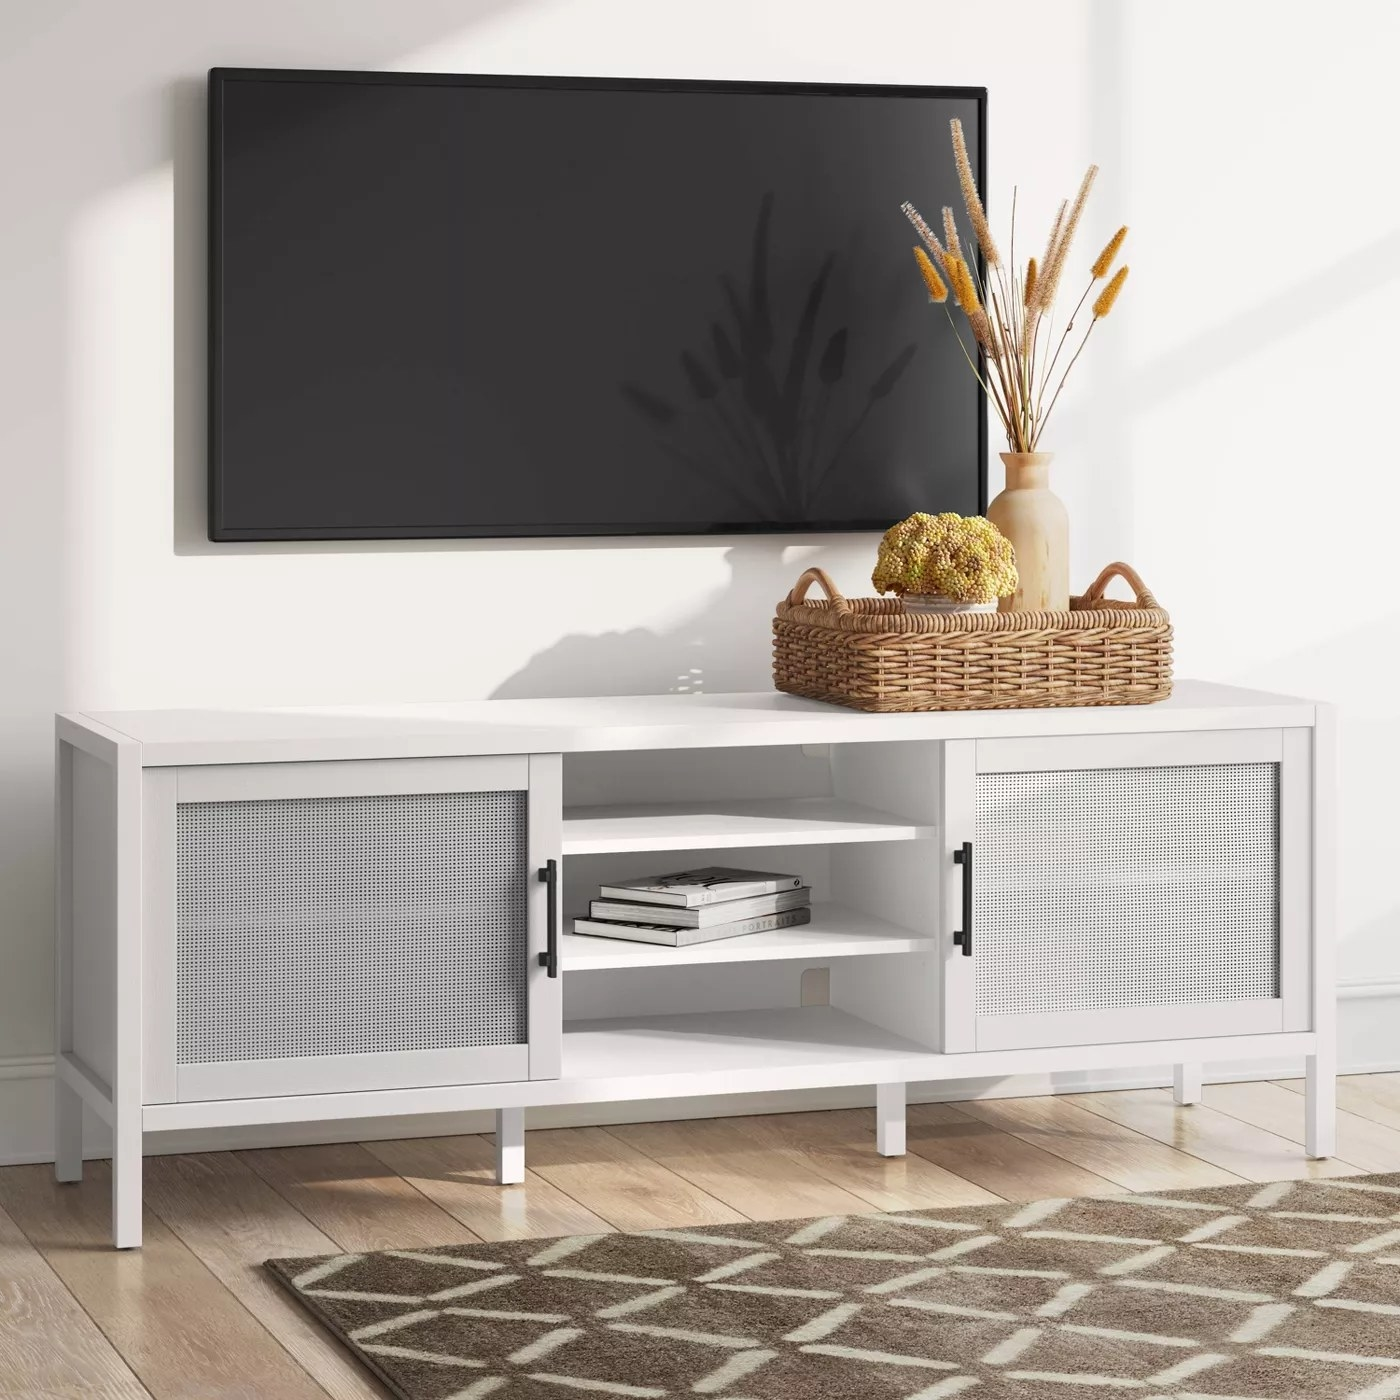 The TV stand with three separate storage compartments placed underneath a mounted TV